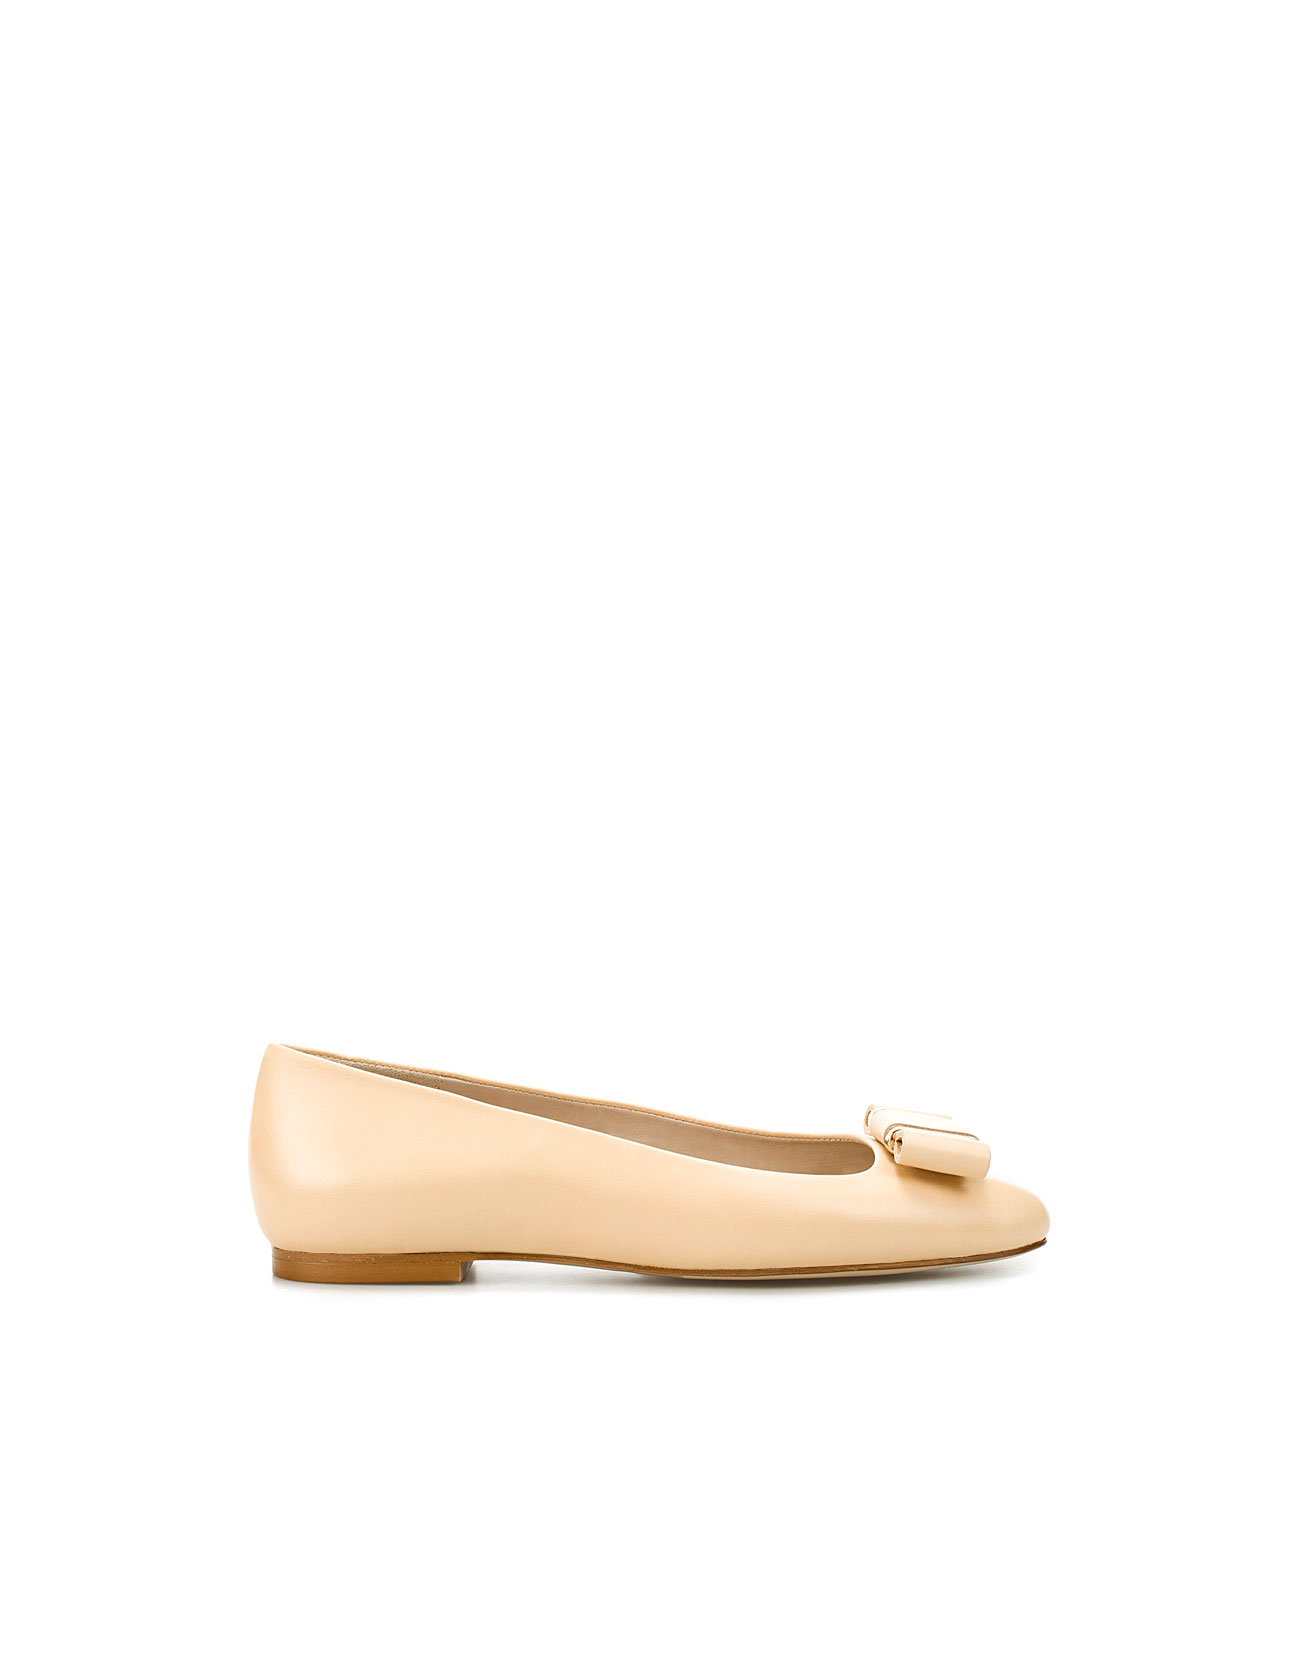 Unique Zara Flat Shoes With Metal Heel Detail In Brown  Lyst